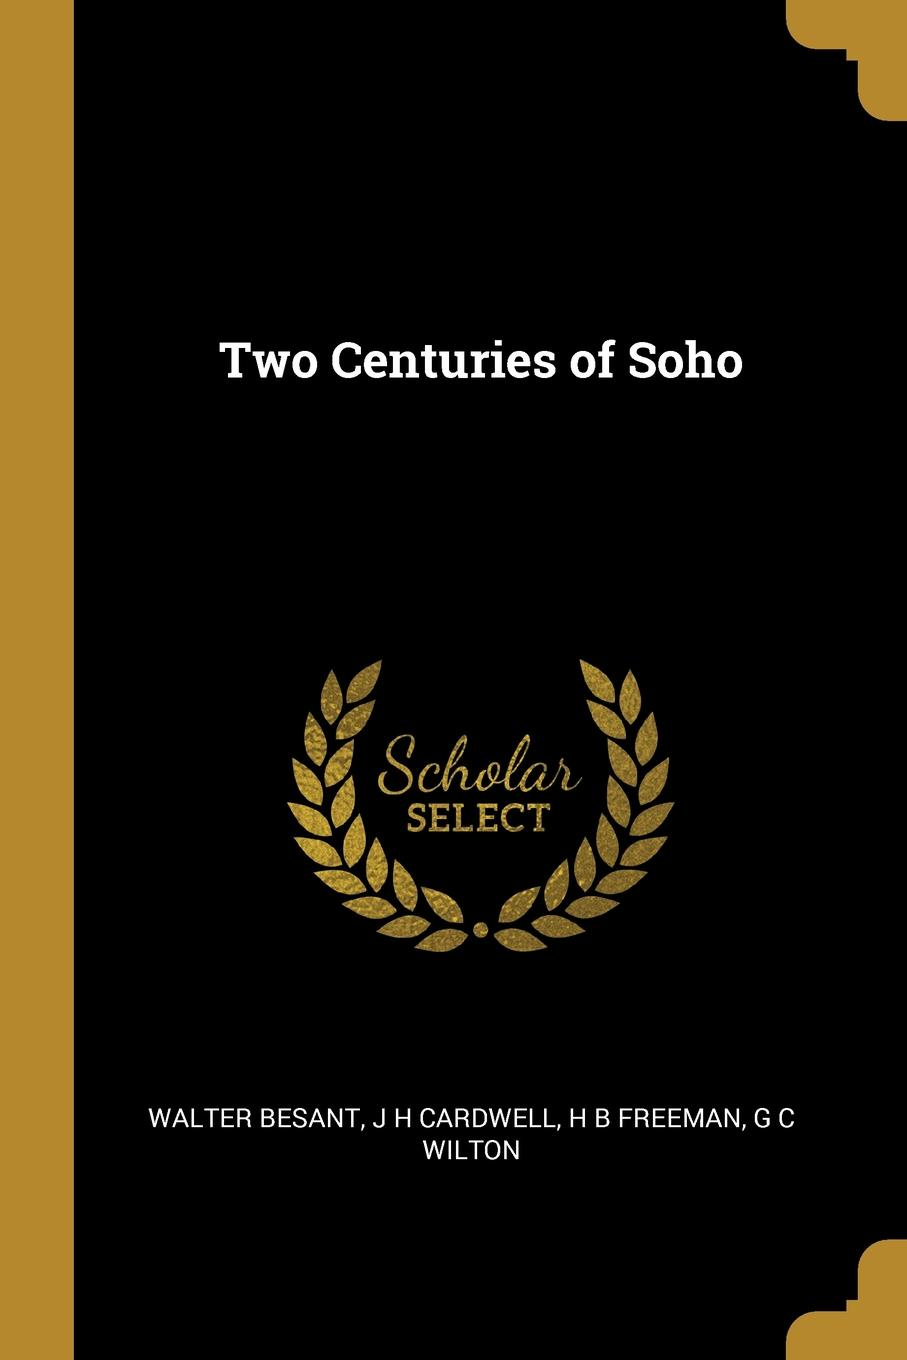 Walter Besant, J H cardwell, H B Freeman. Two Centuries of Soho